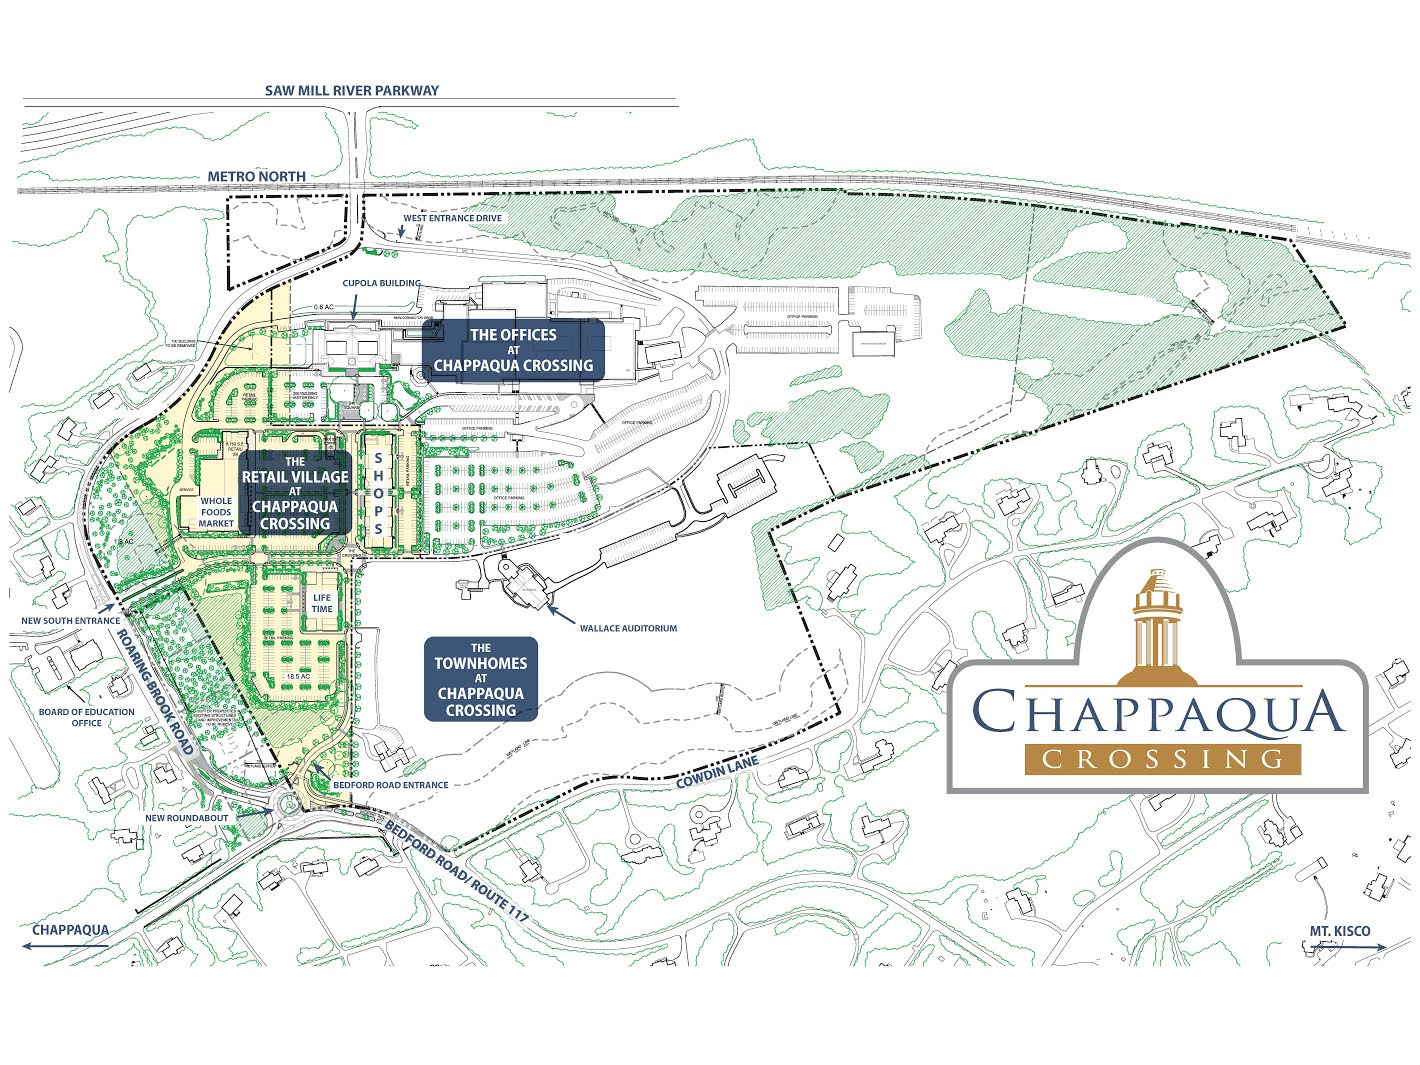 Chappaqua Crossings